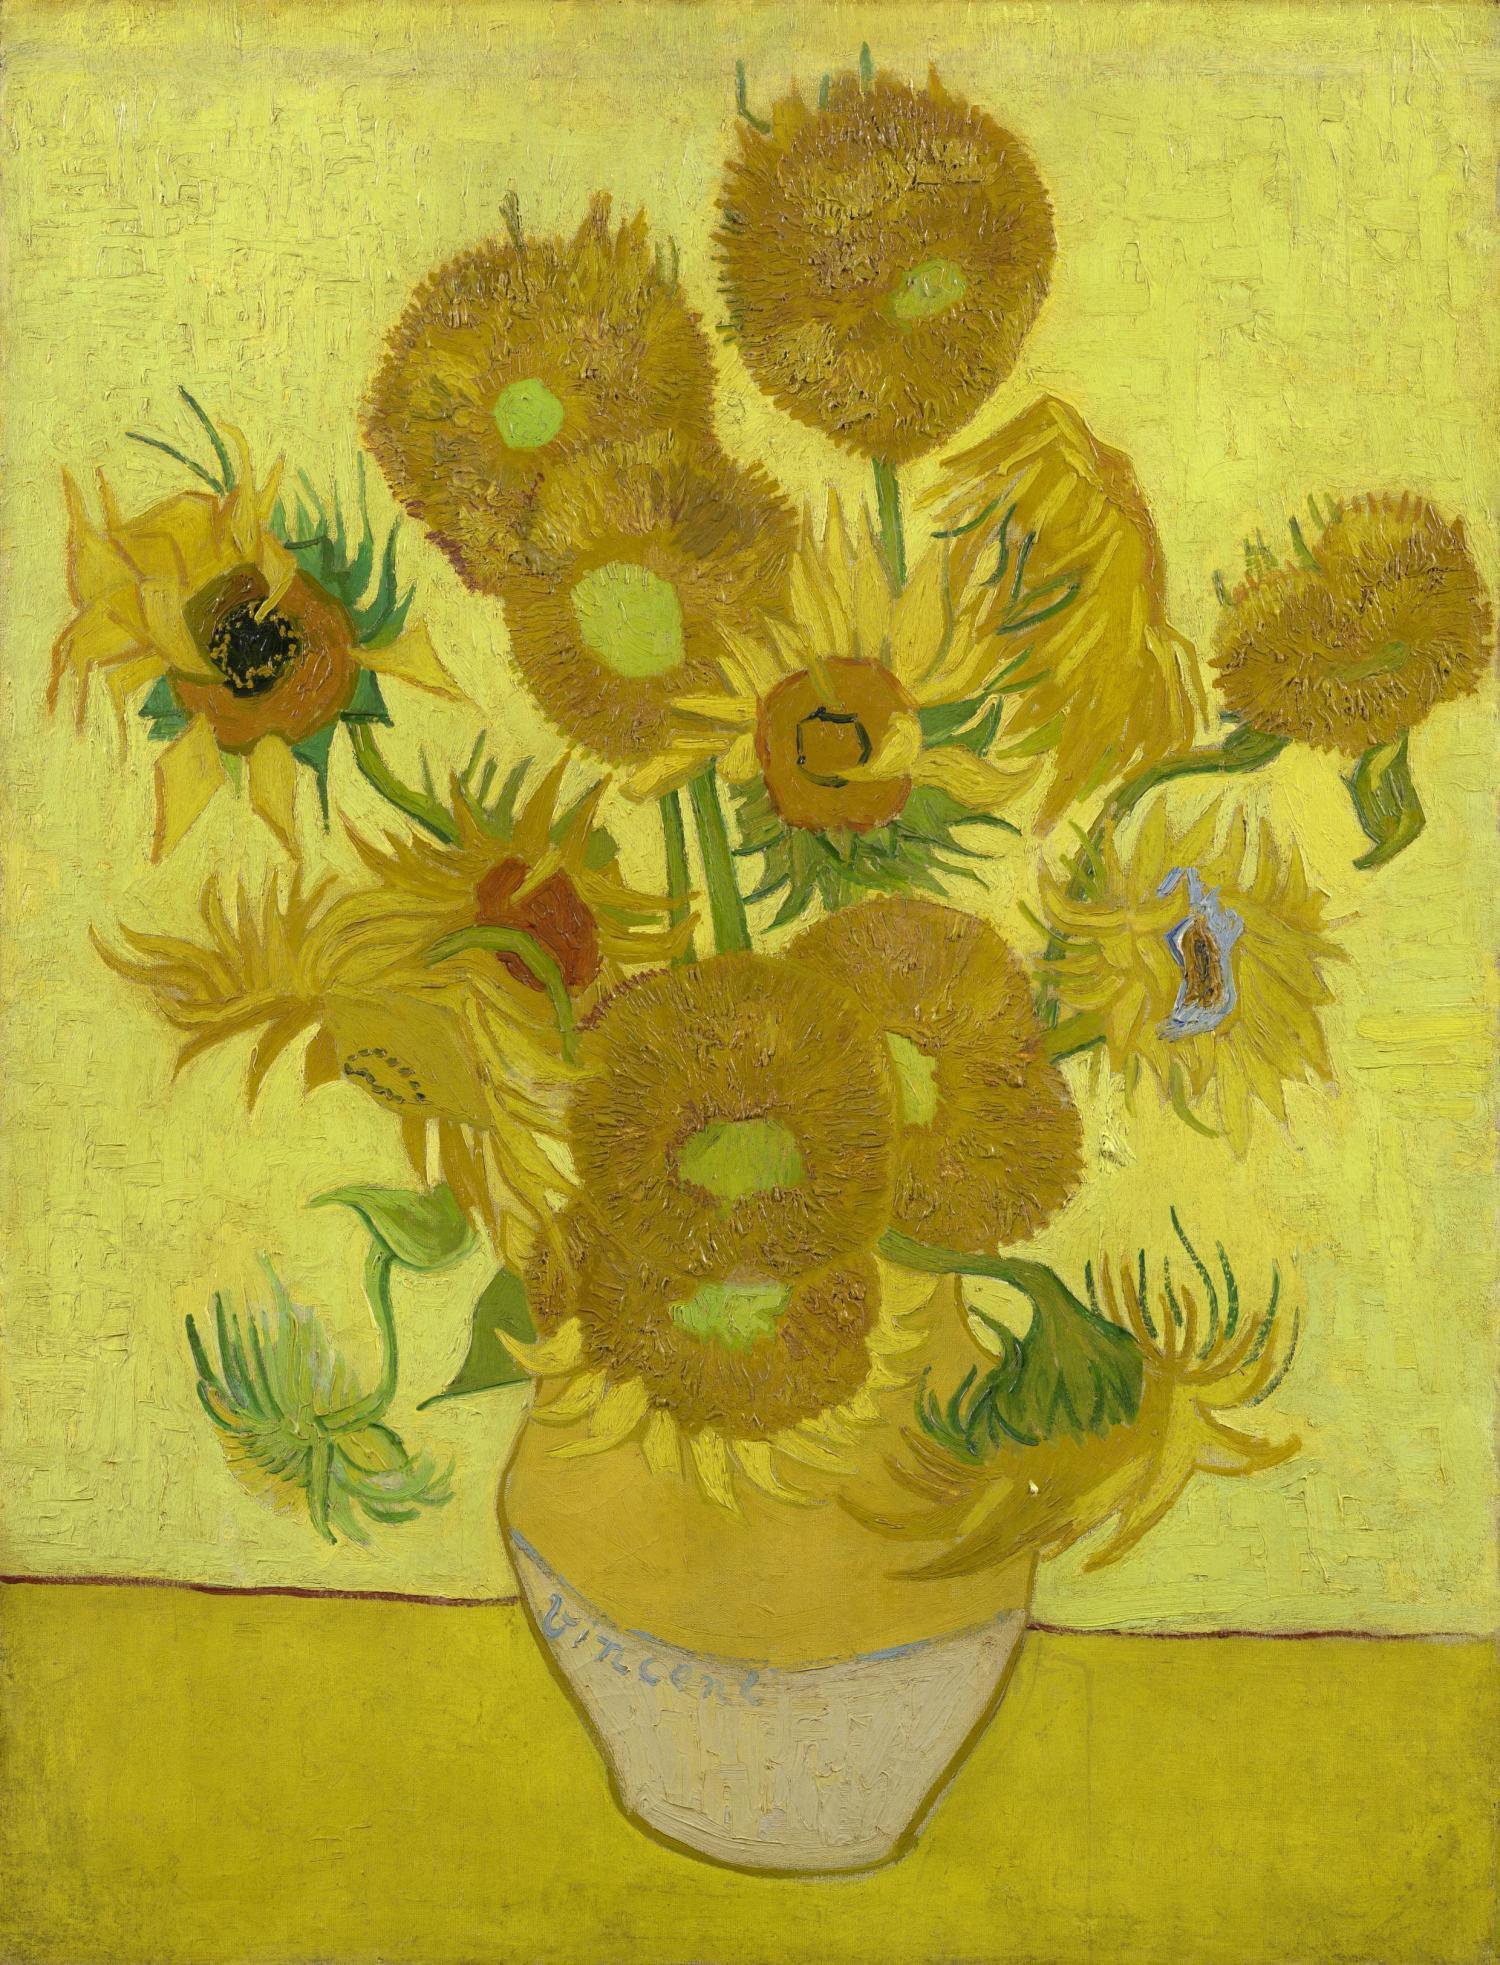 Van goghs sunflowers are wilting sunflowers 1889 vincent van gogh 1853 1890 credit van gogh museum amsterdam vincent van gogh foundation reviewsmspy